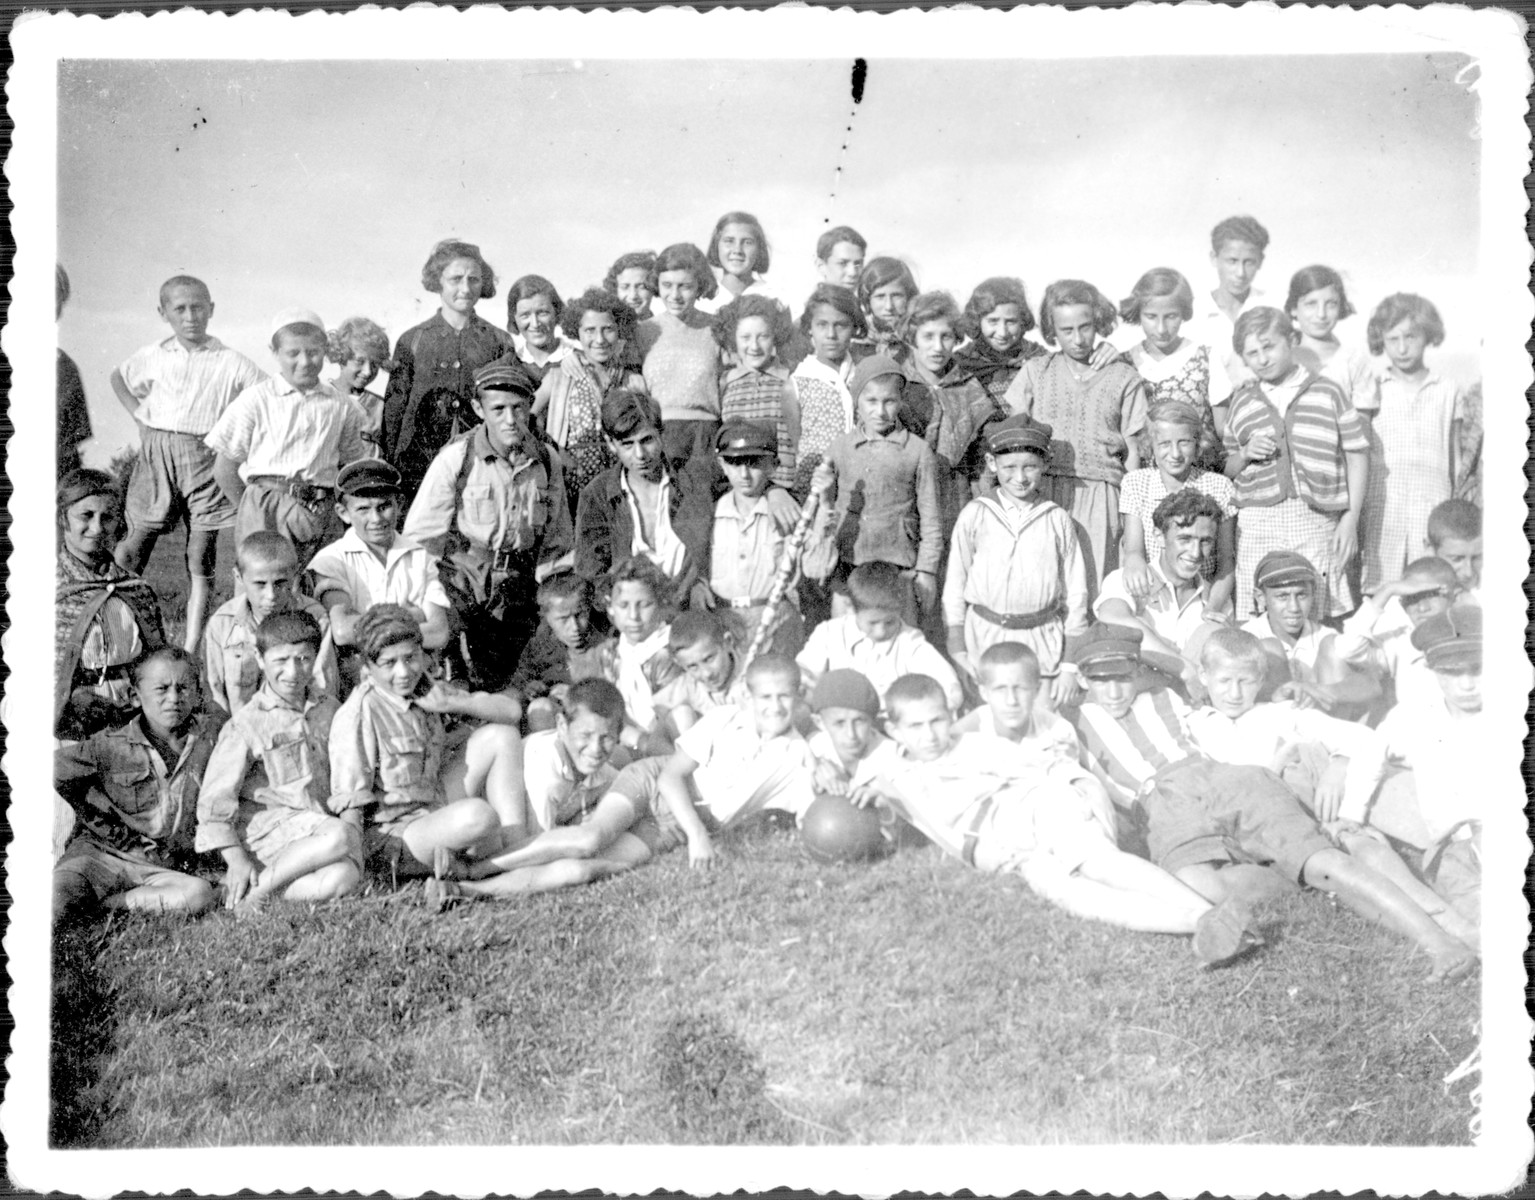 Members of Hashomer Hatzair from the Korczak Orphanage go a Lag B'omer outing.  Shlomo Nadel is pictured on the far right with a hat.